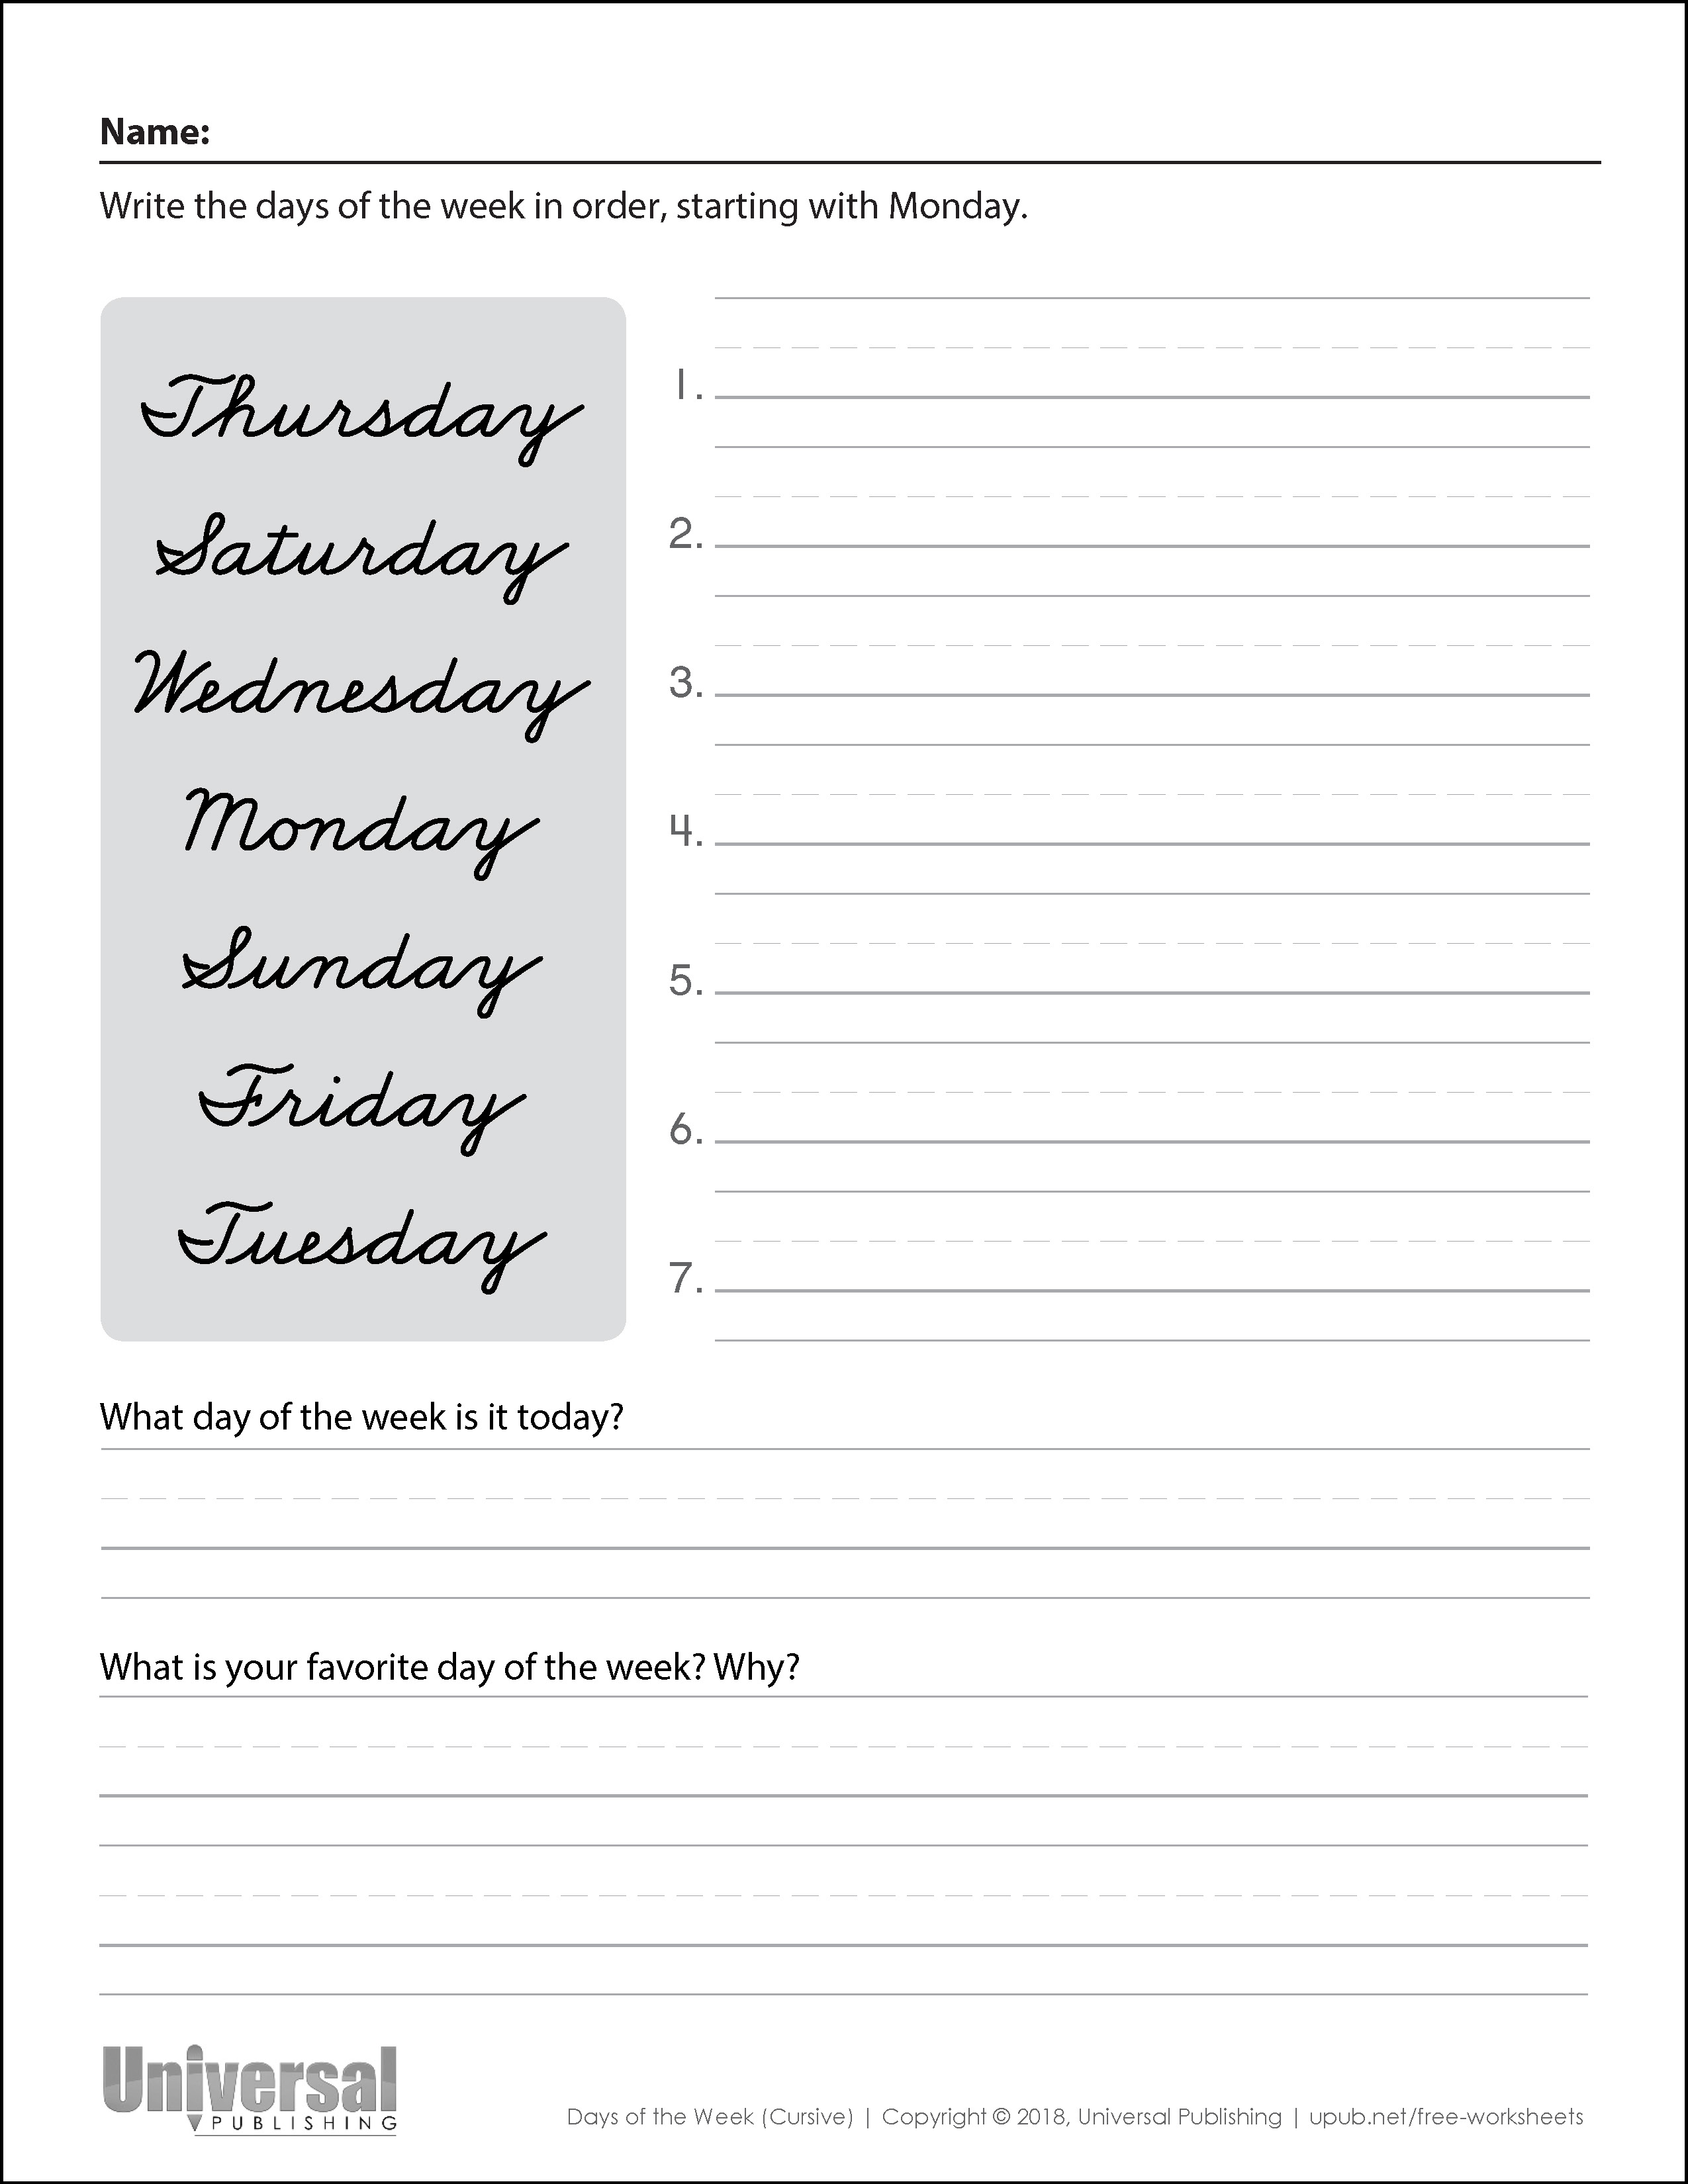 Days of the Week Cursive